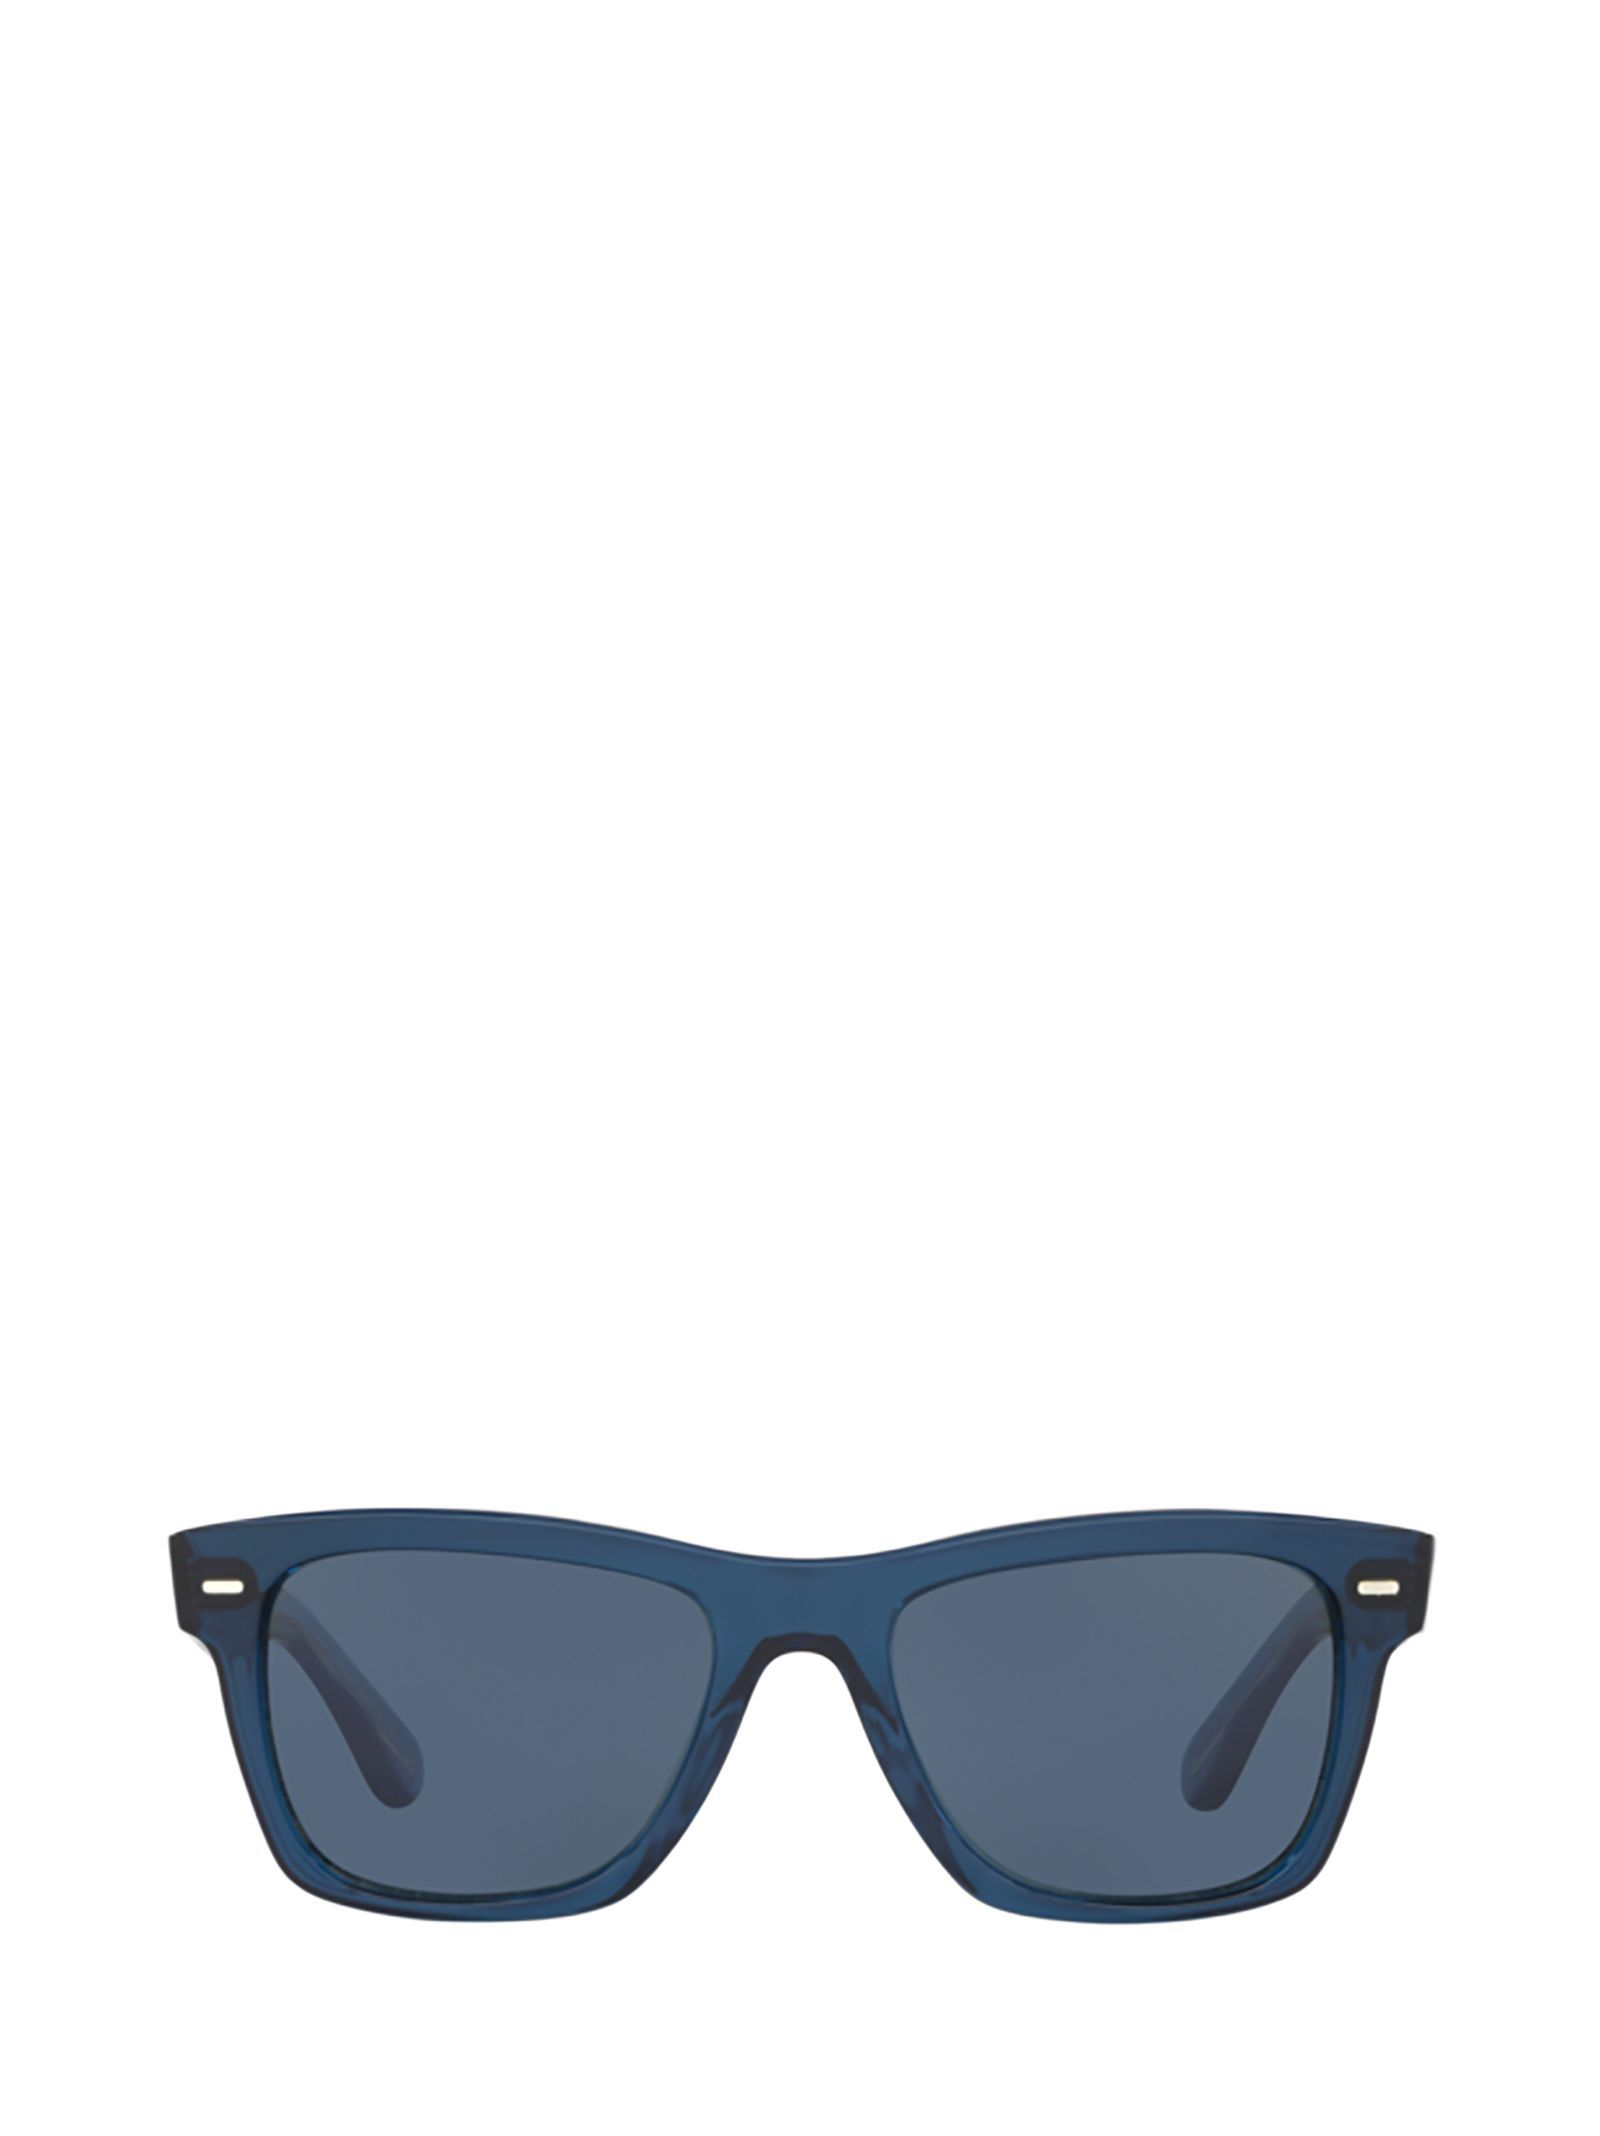 1e482049118 OLIVER PEOPLES SUNGLASSES.  oliverpeoples